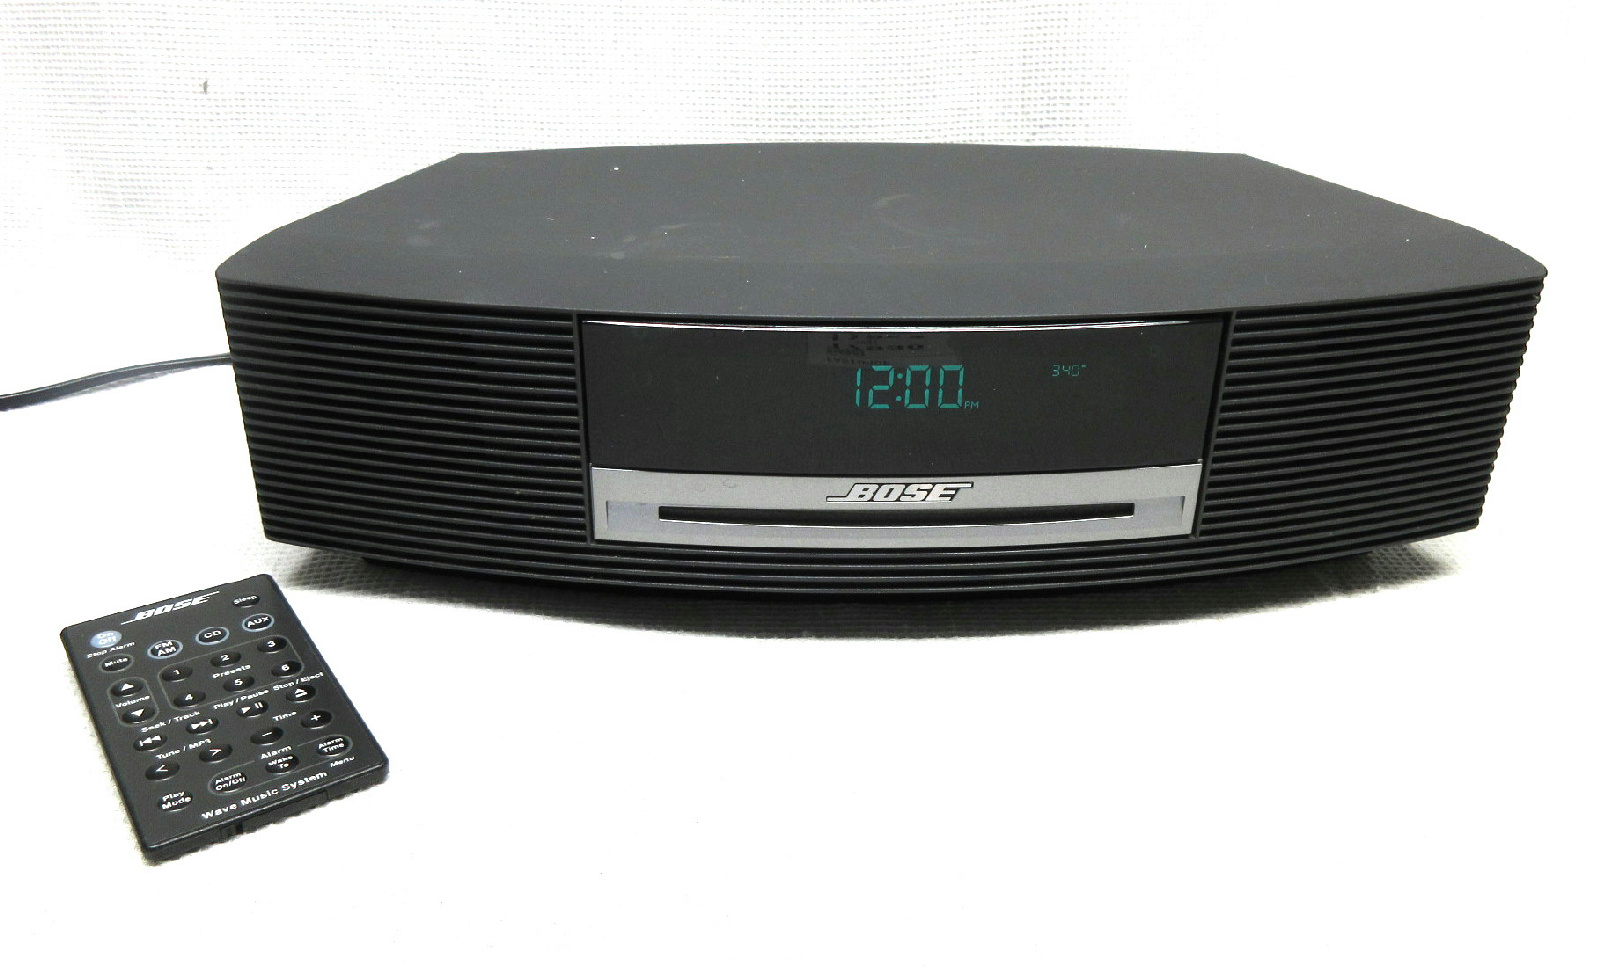 bose wave music system model awrcc1 cd player graphite. Black Bedroom Furniture Sets. Home Design Ideas